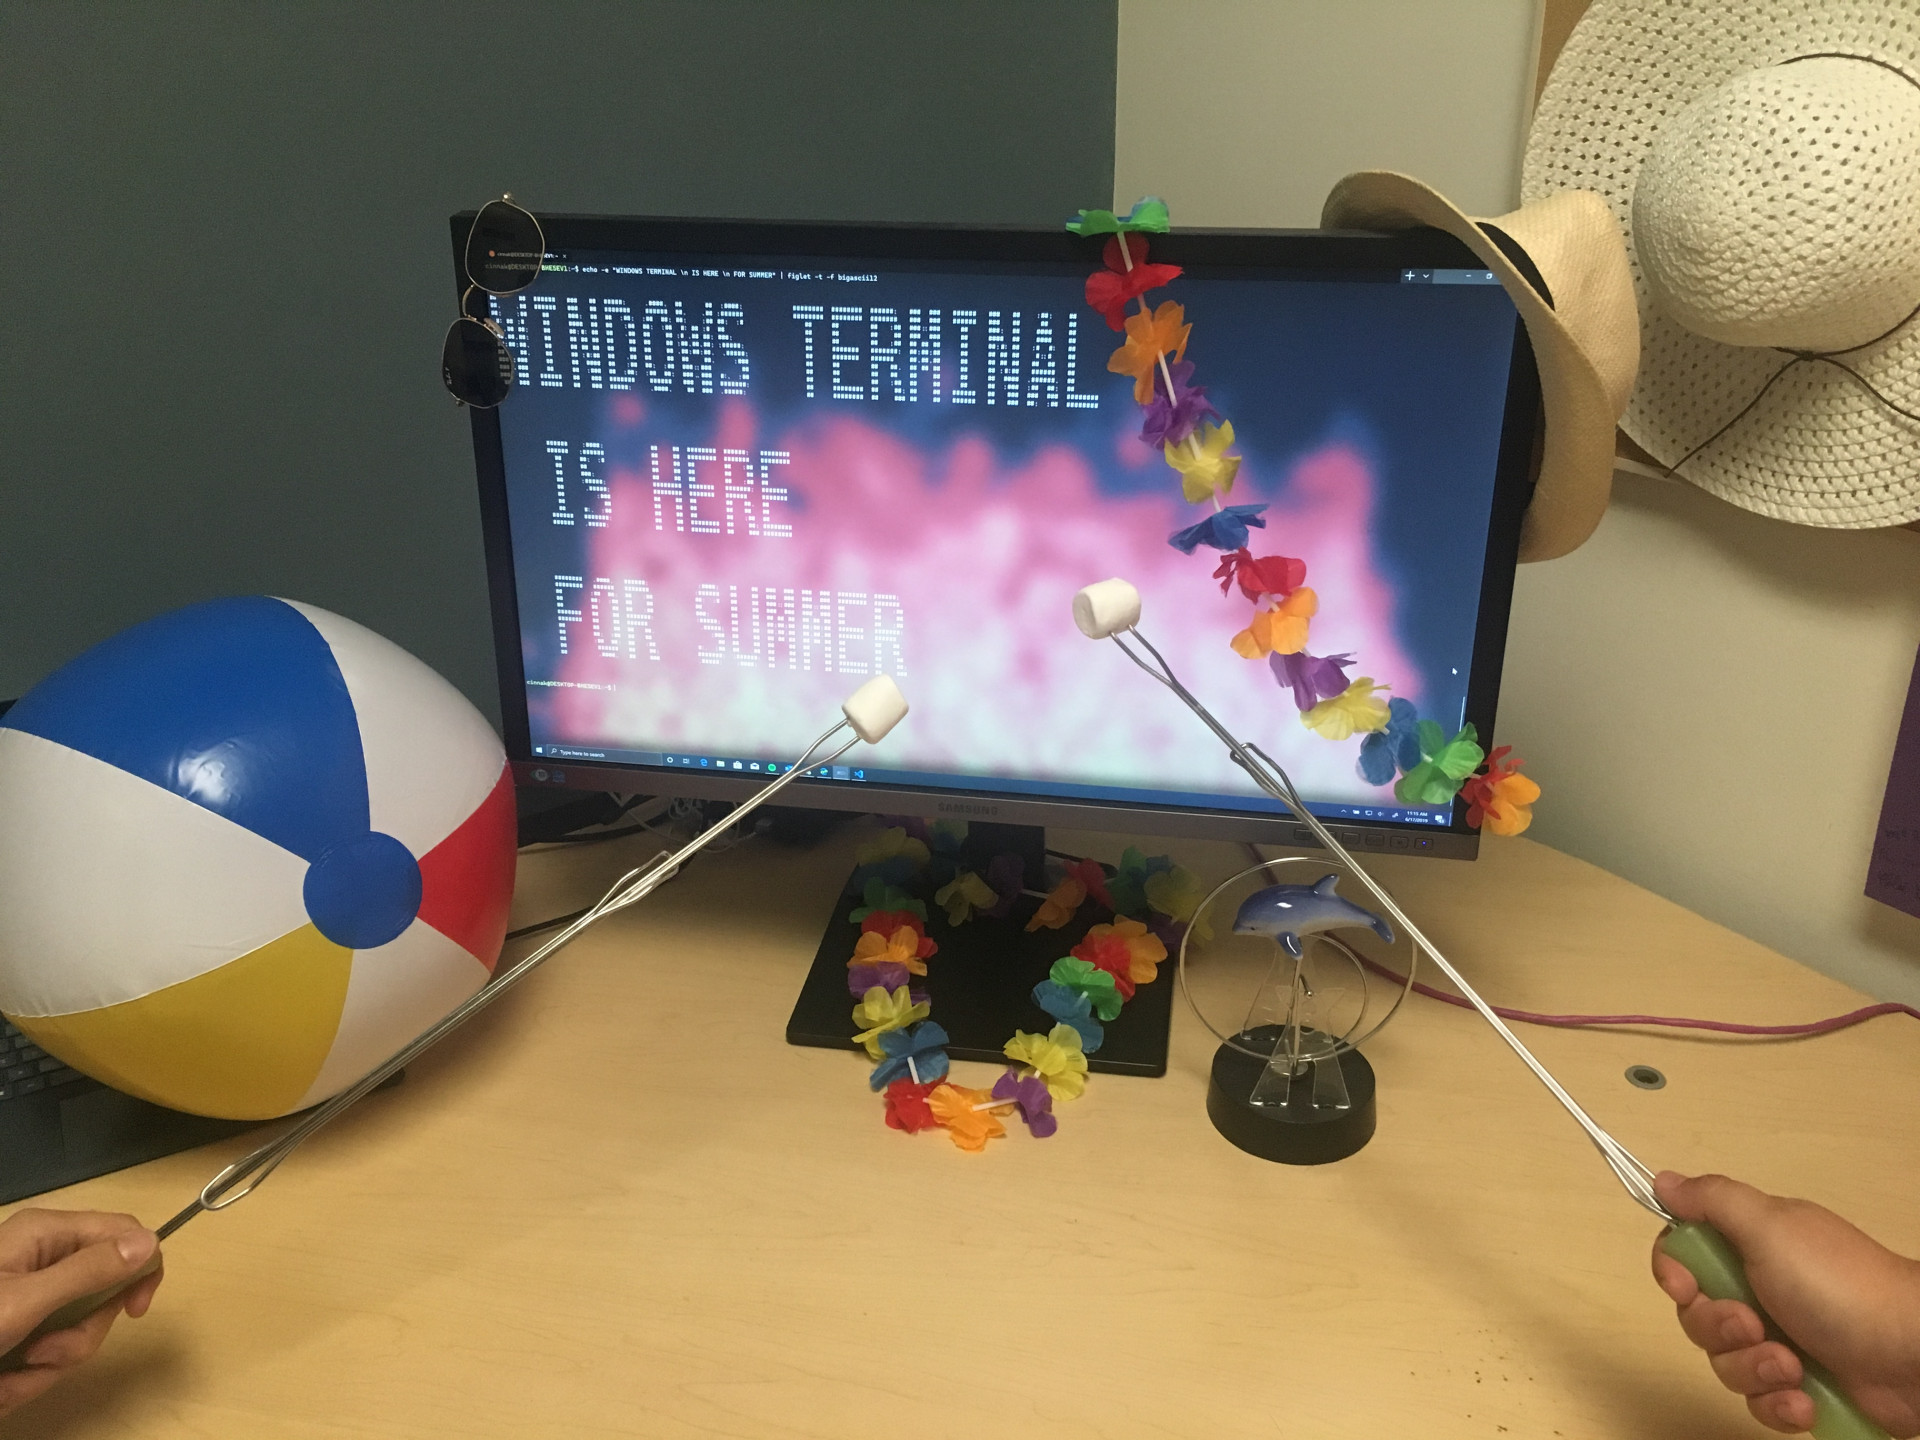 Windows Terminal: Pre-release version of the new Windows 10